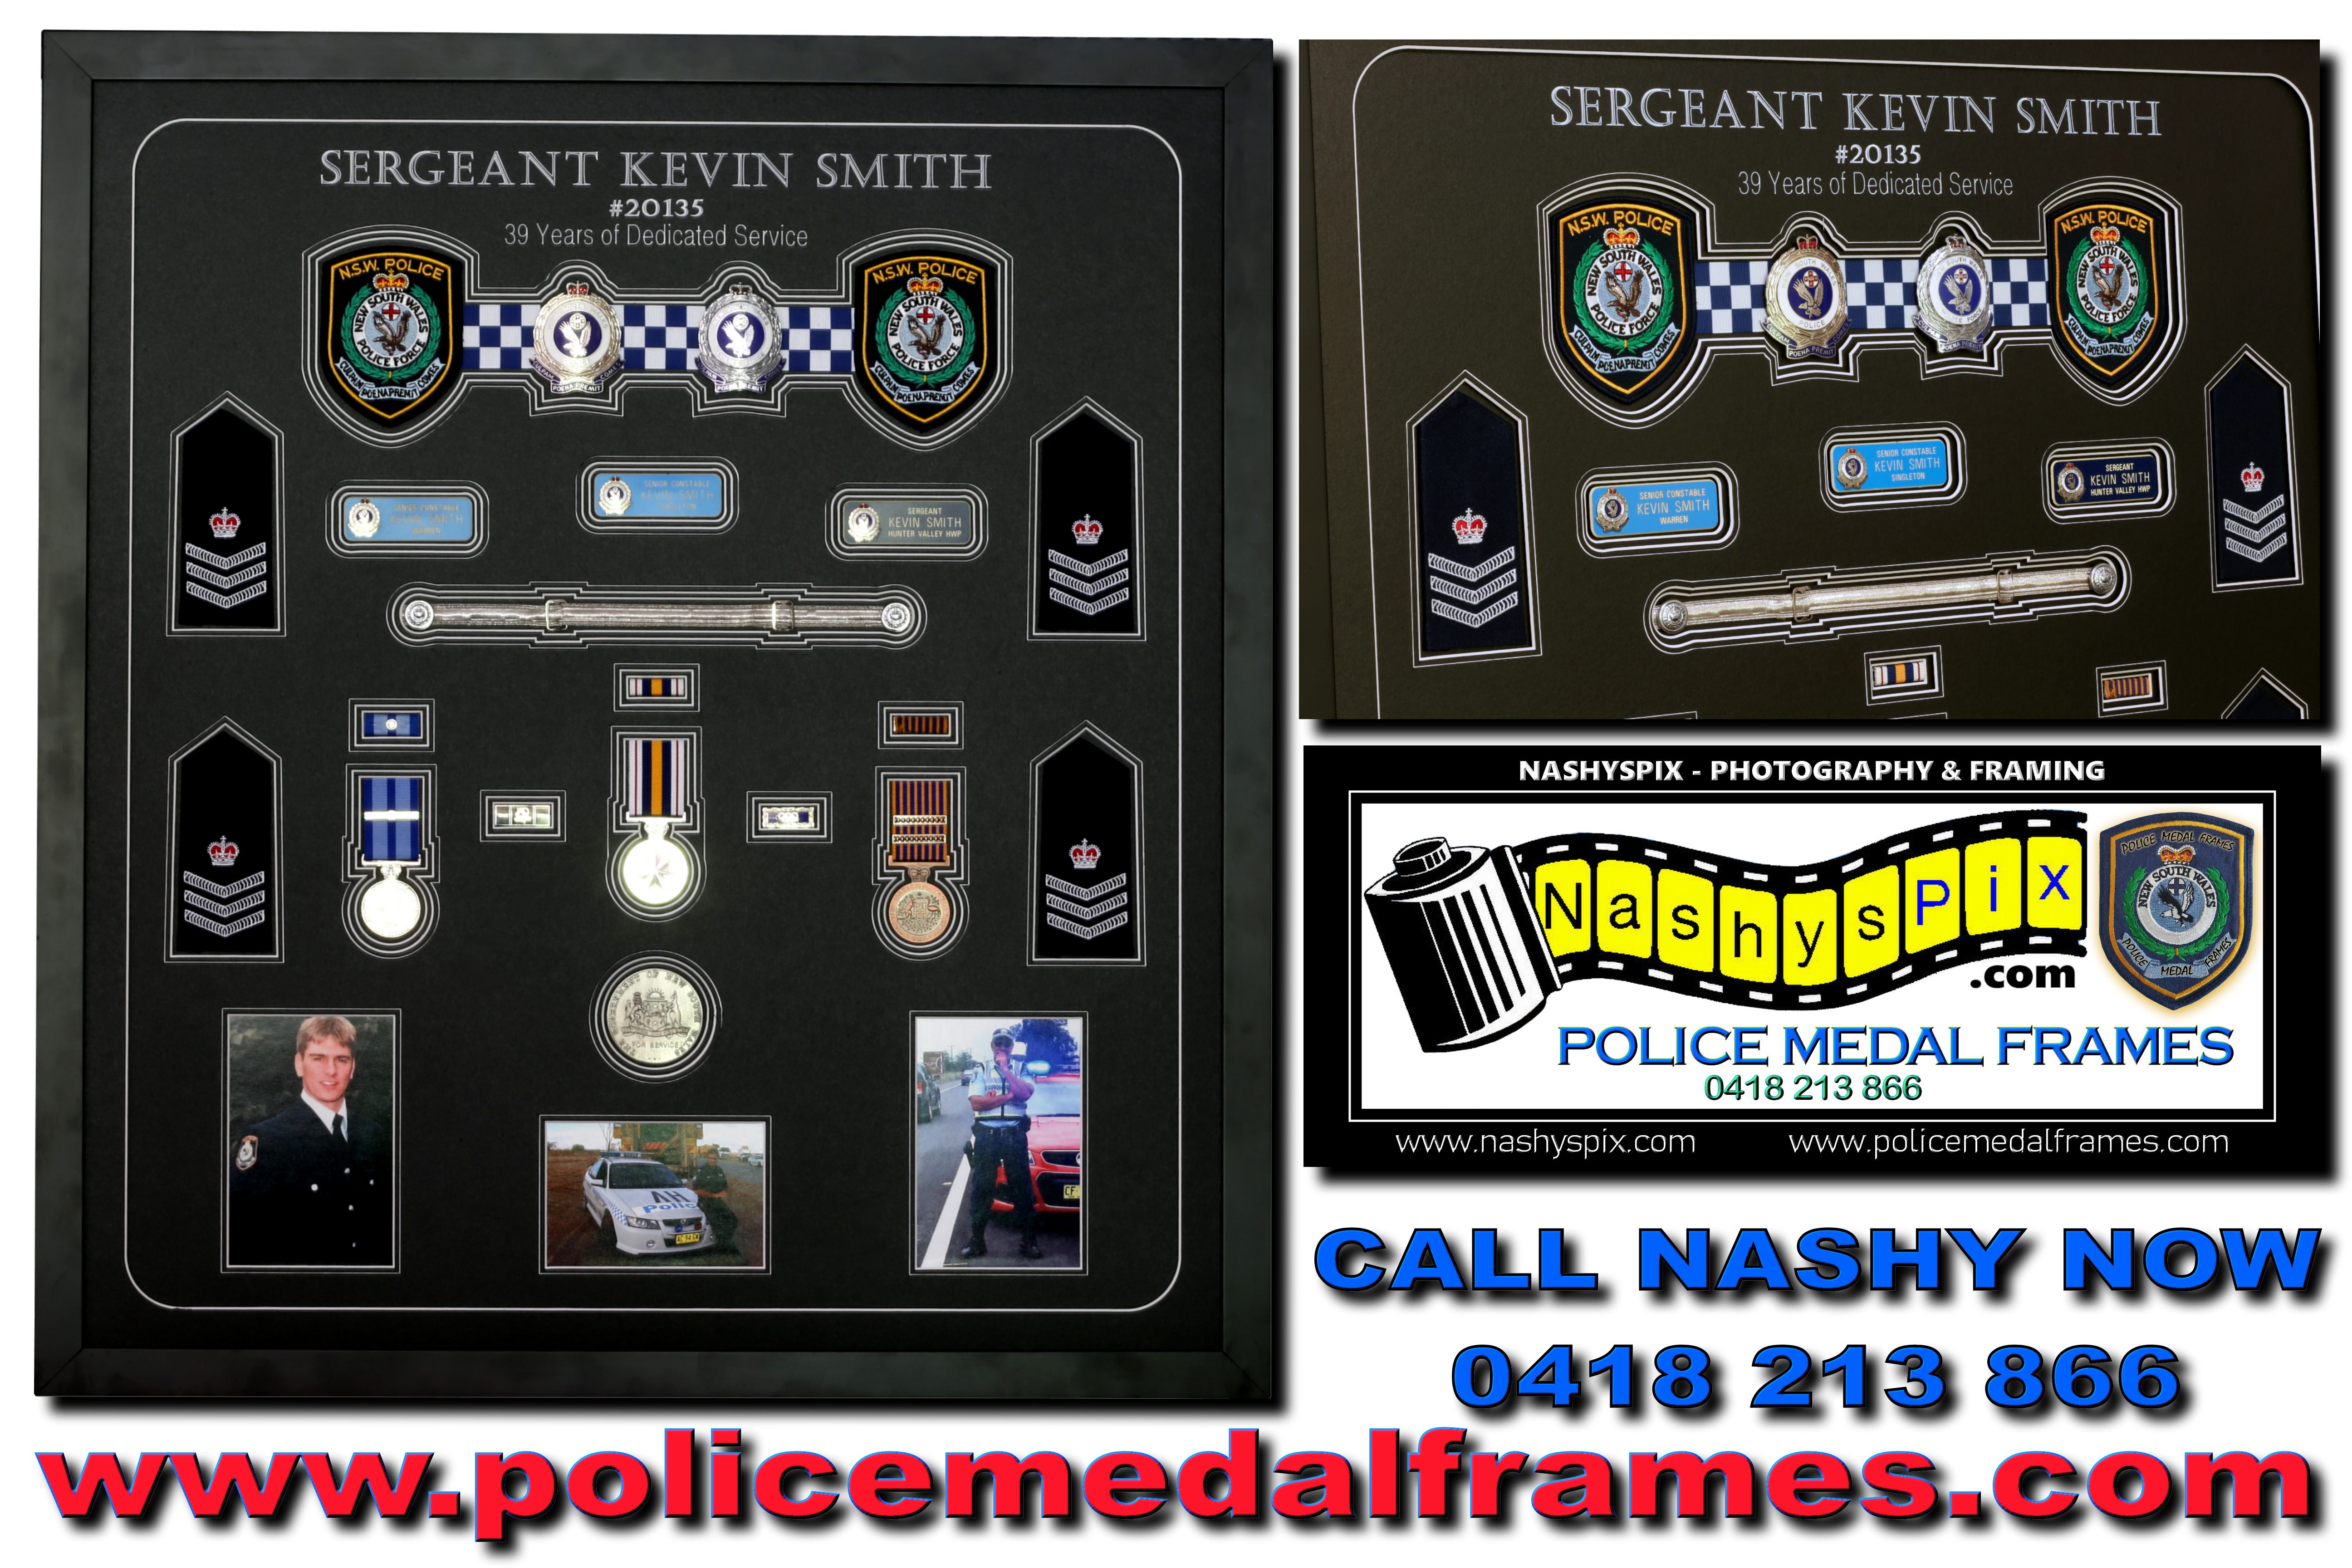 KEVIN SMITH POLICE 14-11-2020